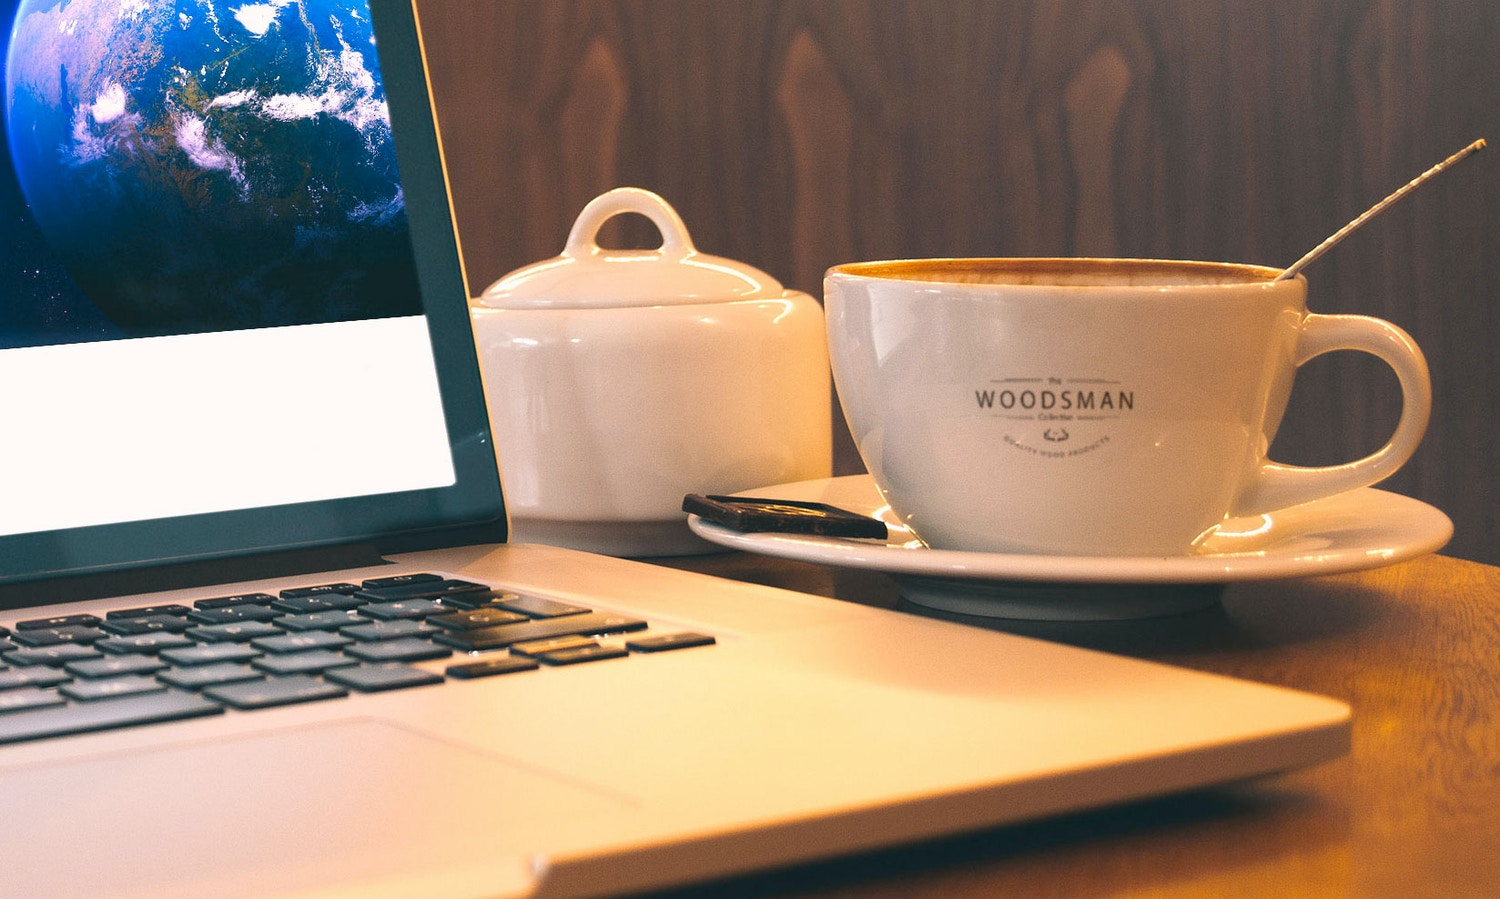 Macbook Pro And Coffee Cup Mockup by Original Mockups on Original Mockups